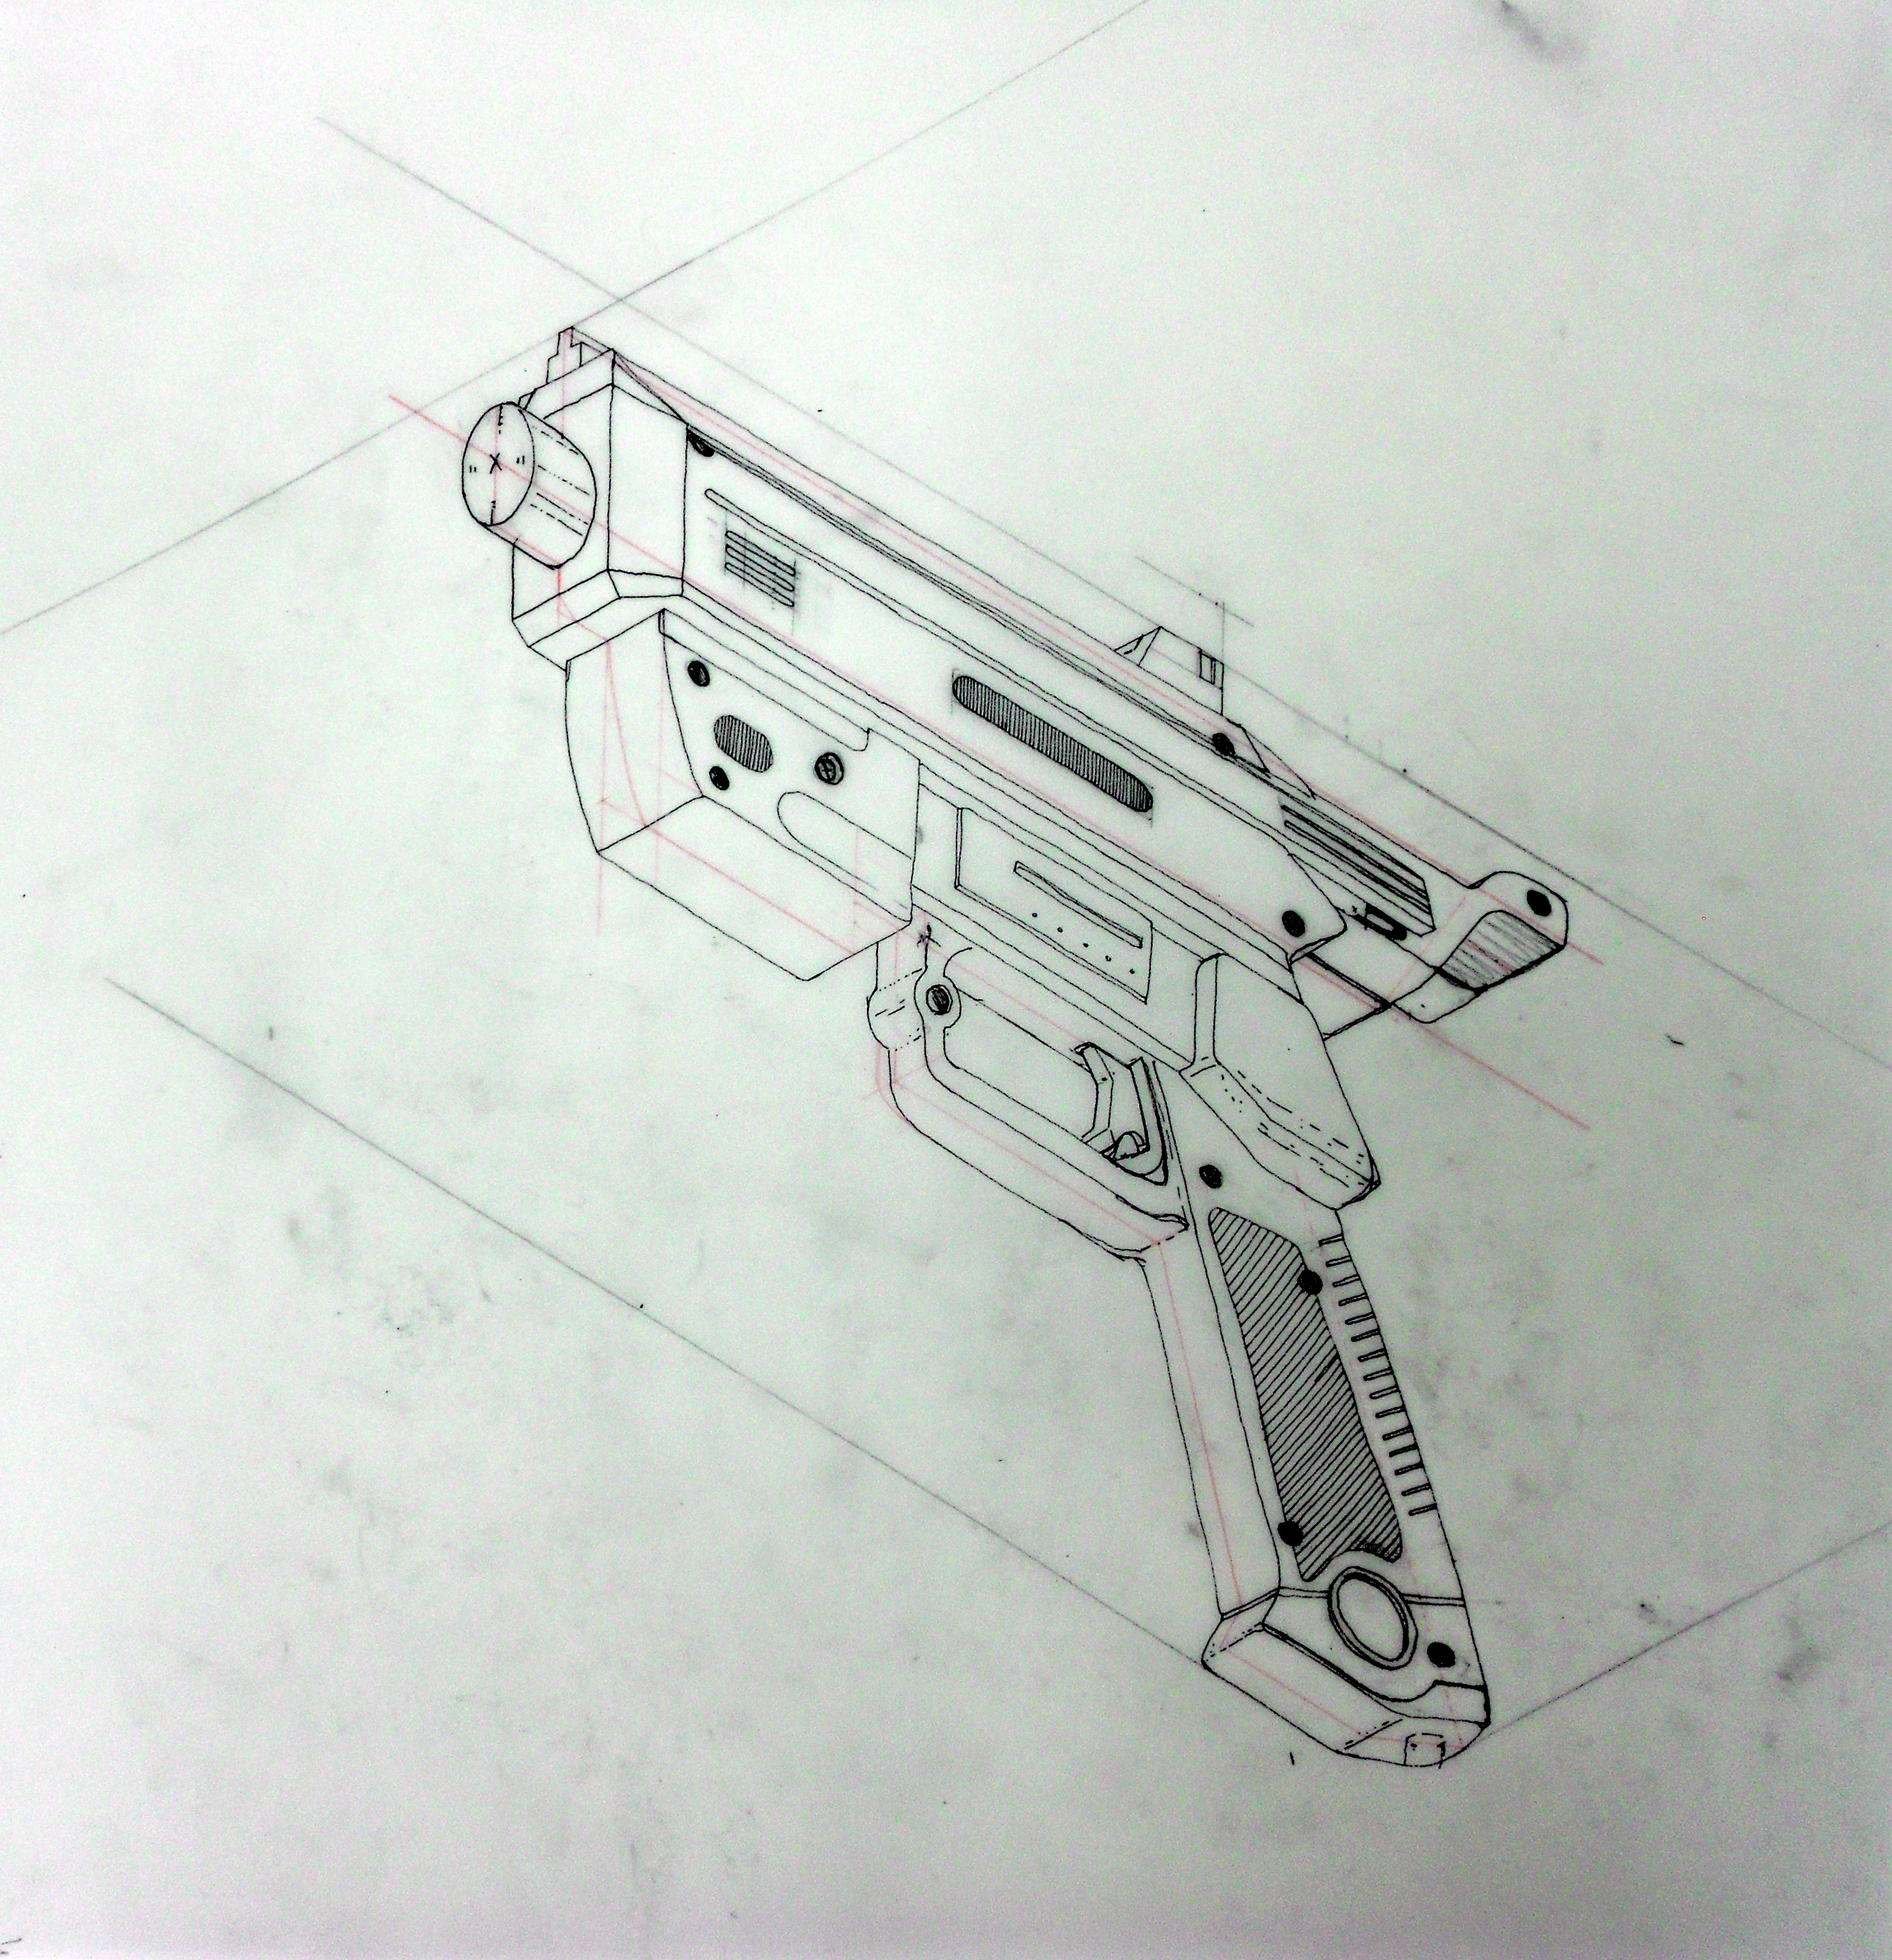 Drawn gun isometric pixel Isometricgun Reverse Isometric Cool Search